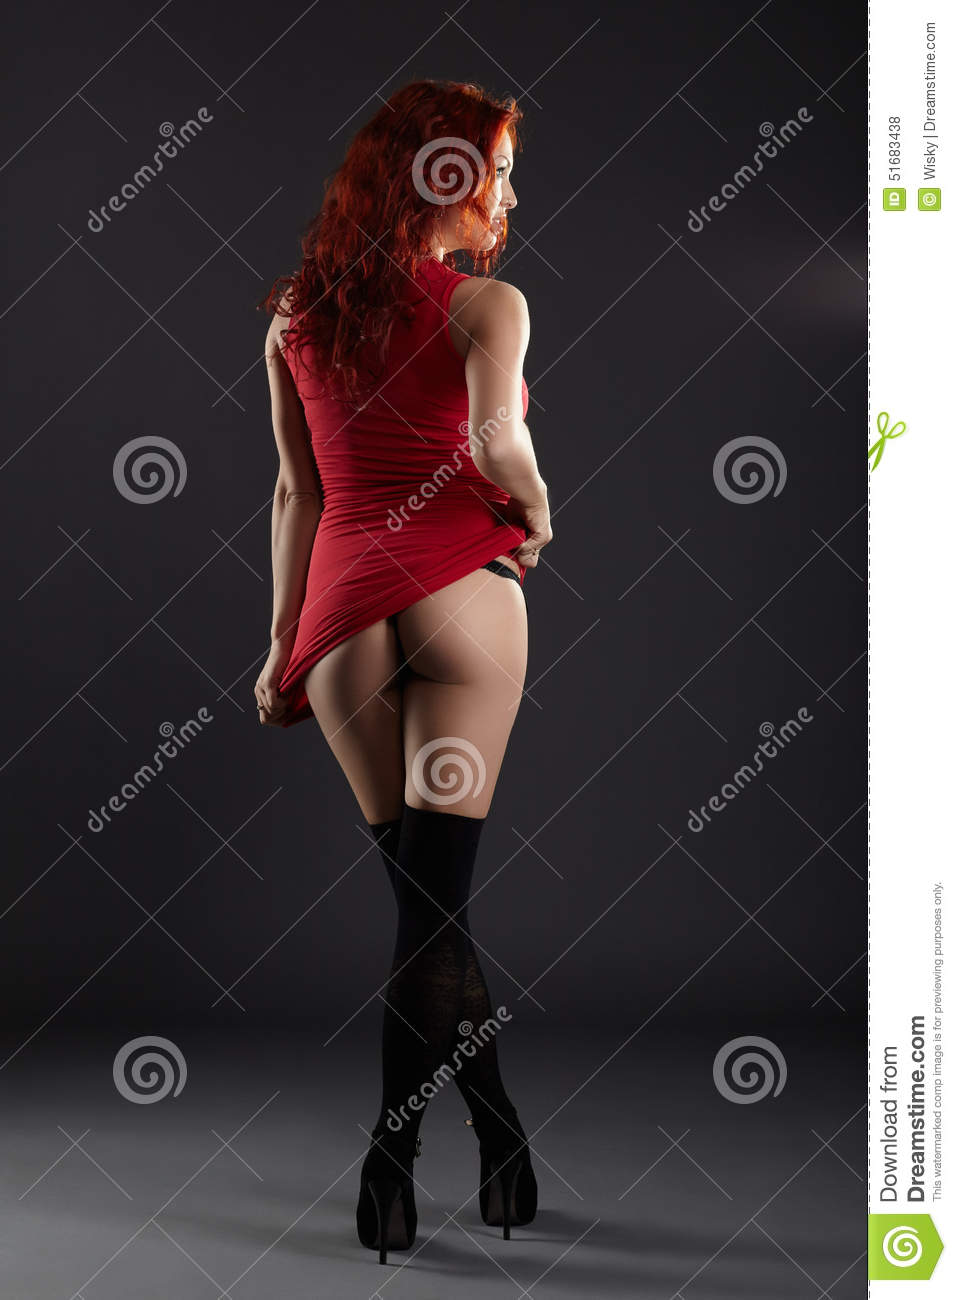 Hot red-haired woman bared her ass, on gray background